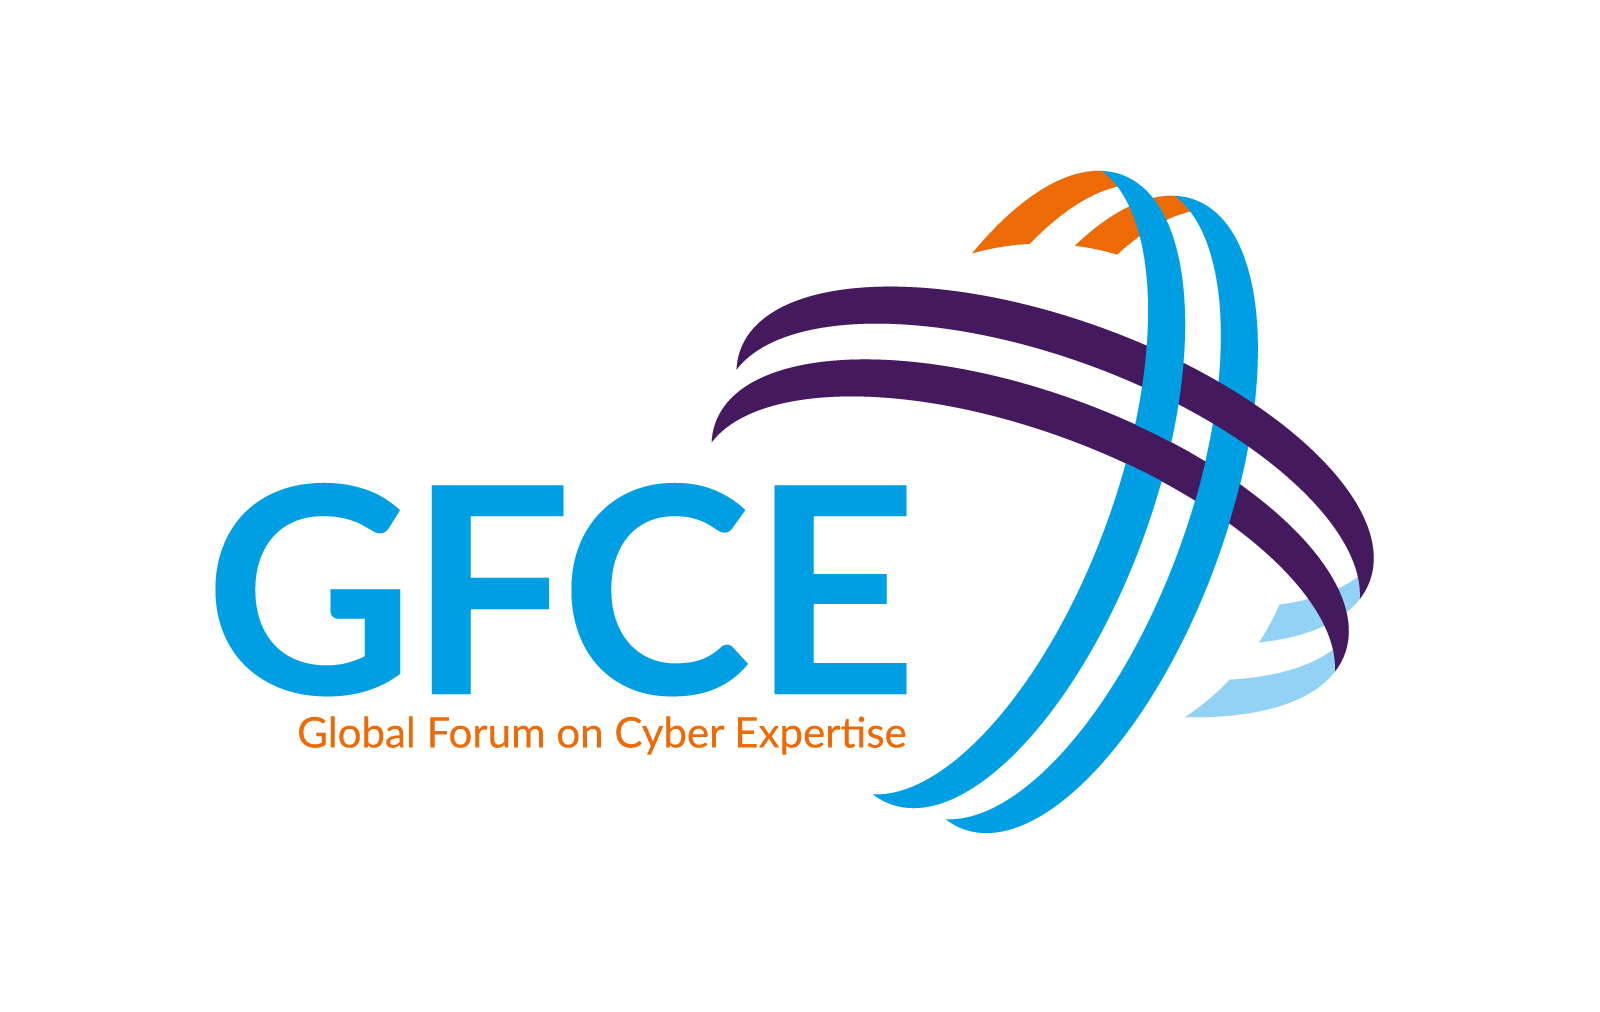 GFCE_logo_RGB-BIG.png - Logo Ar International PNG